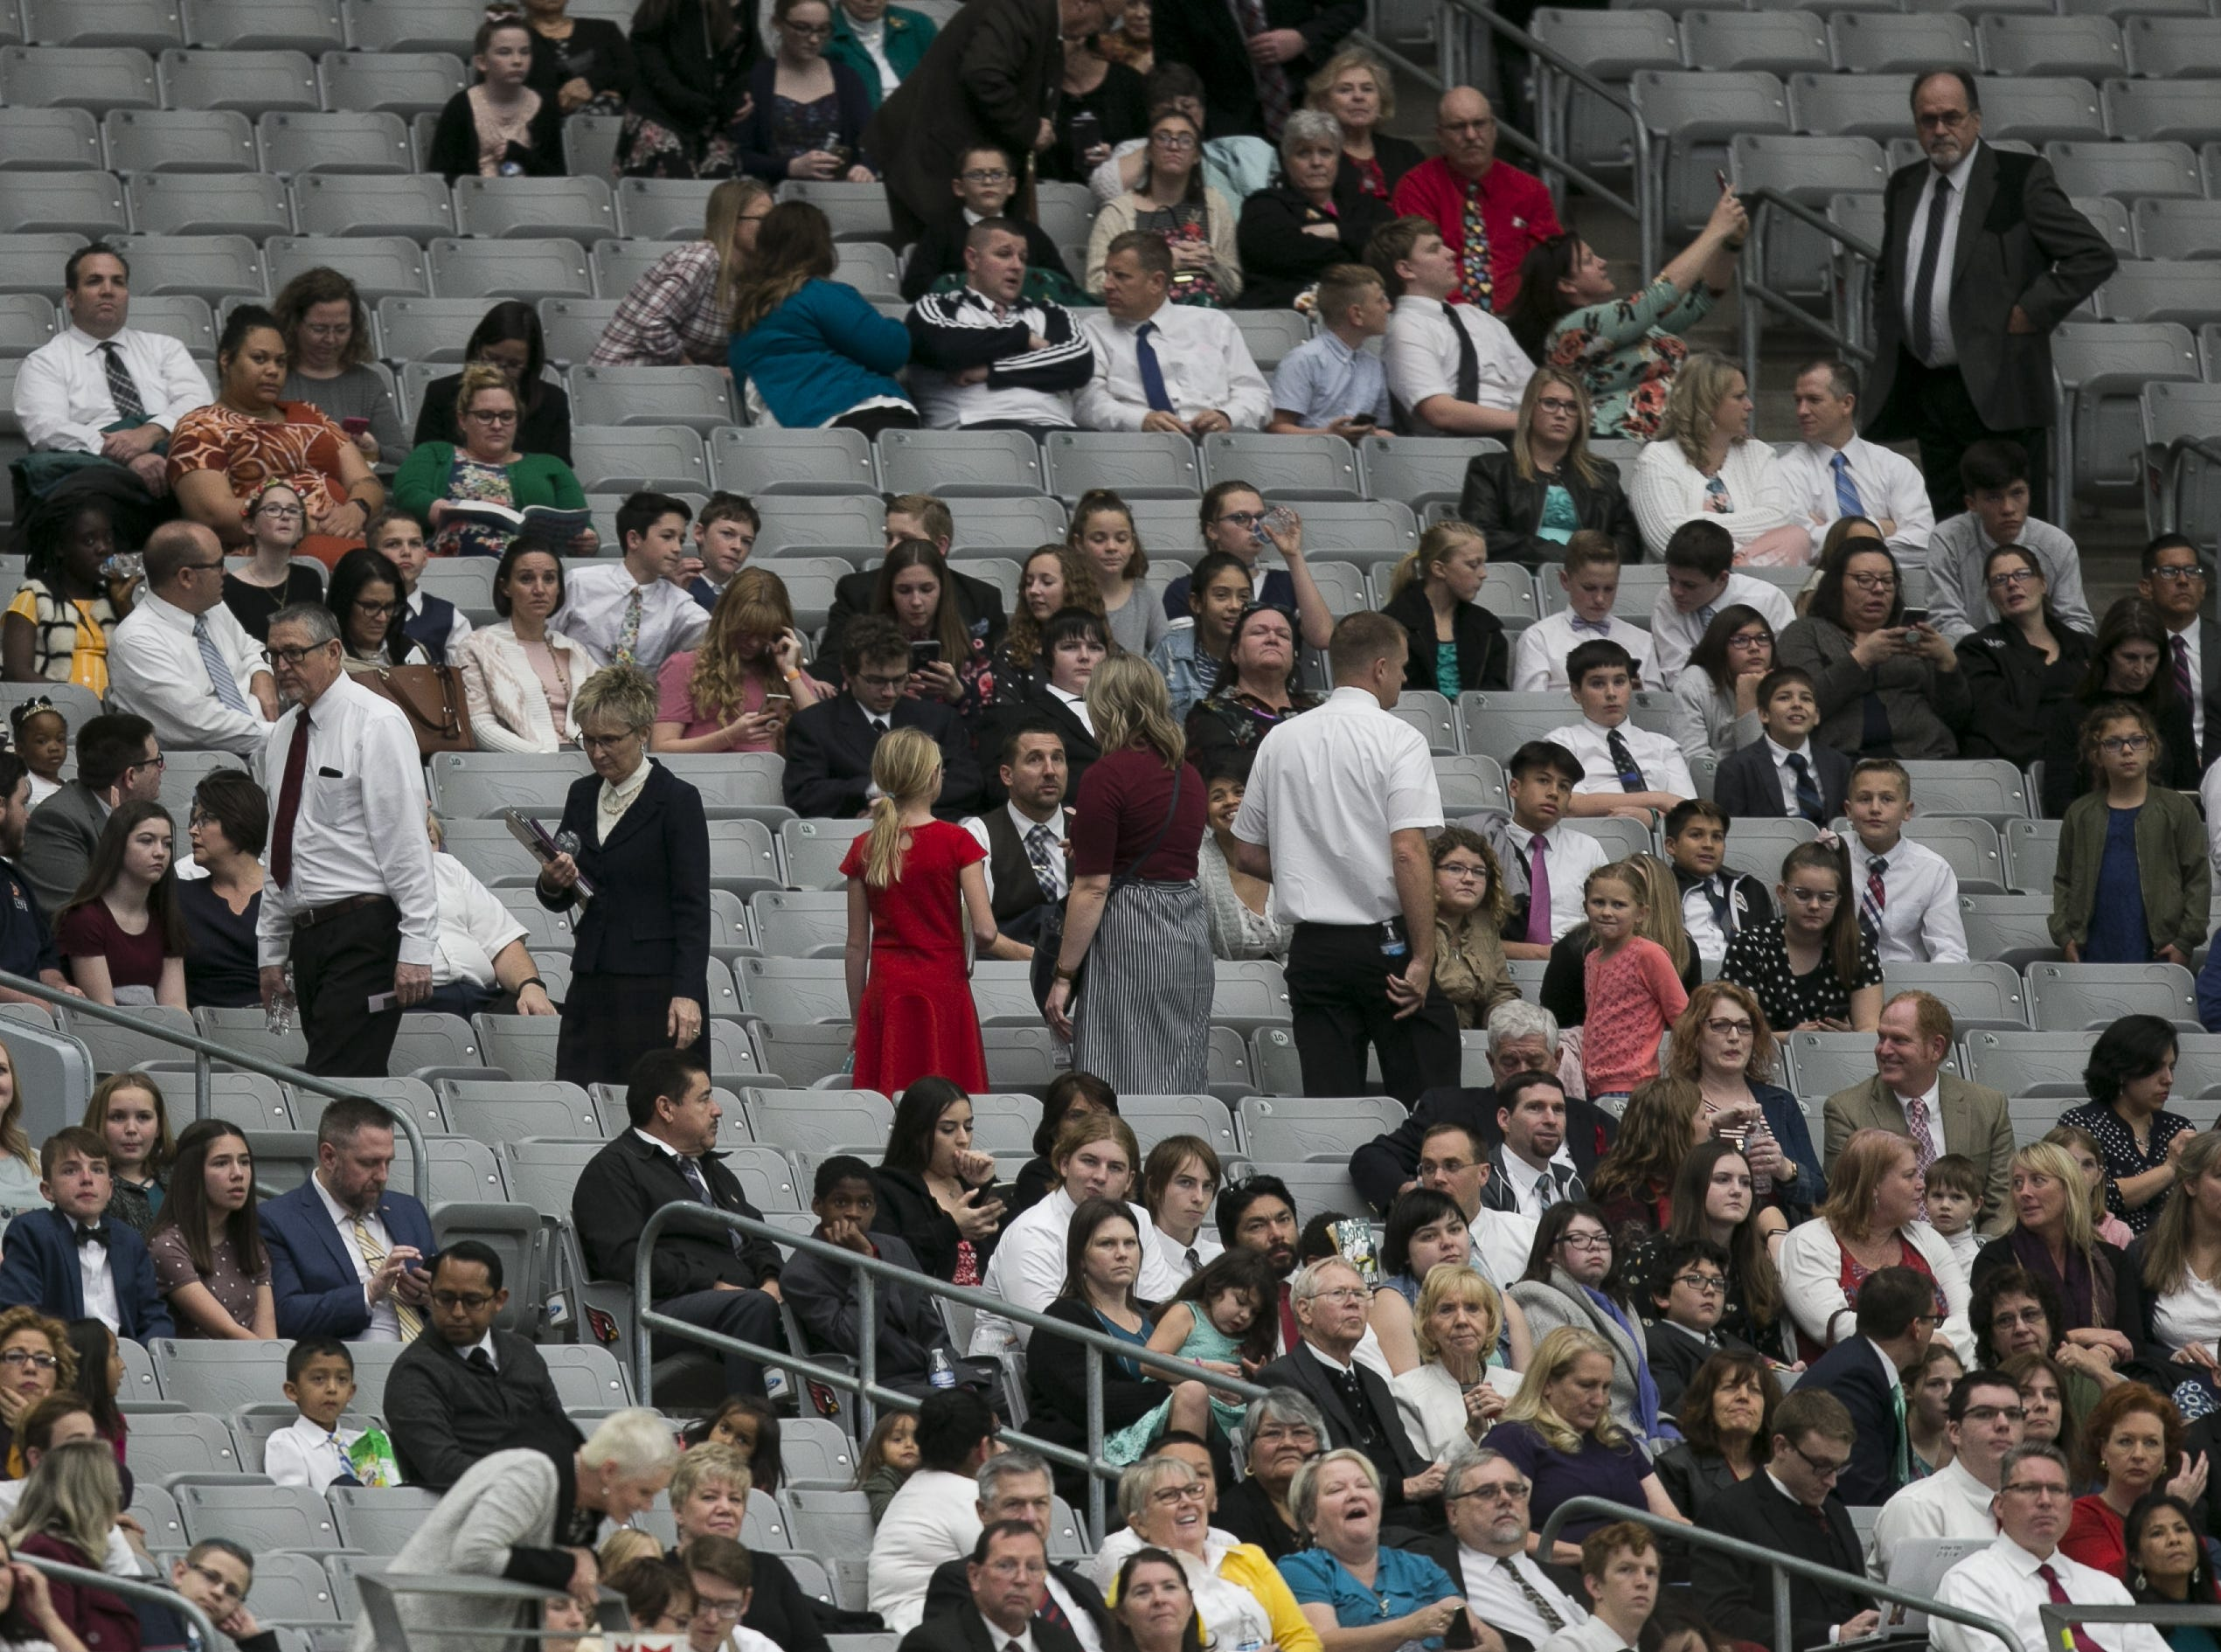 Members of the Church of Jesus Christ of Latter-day Saints wait at State Farm Stadium to hear church President Russell Nelson speak for a devotional in Glendale, Arizona on Sunday, Feb. 10, 2019.